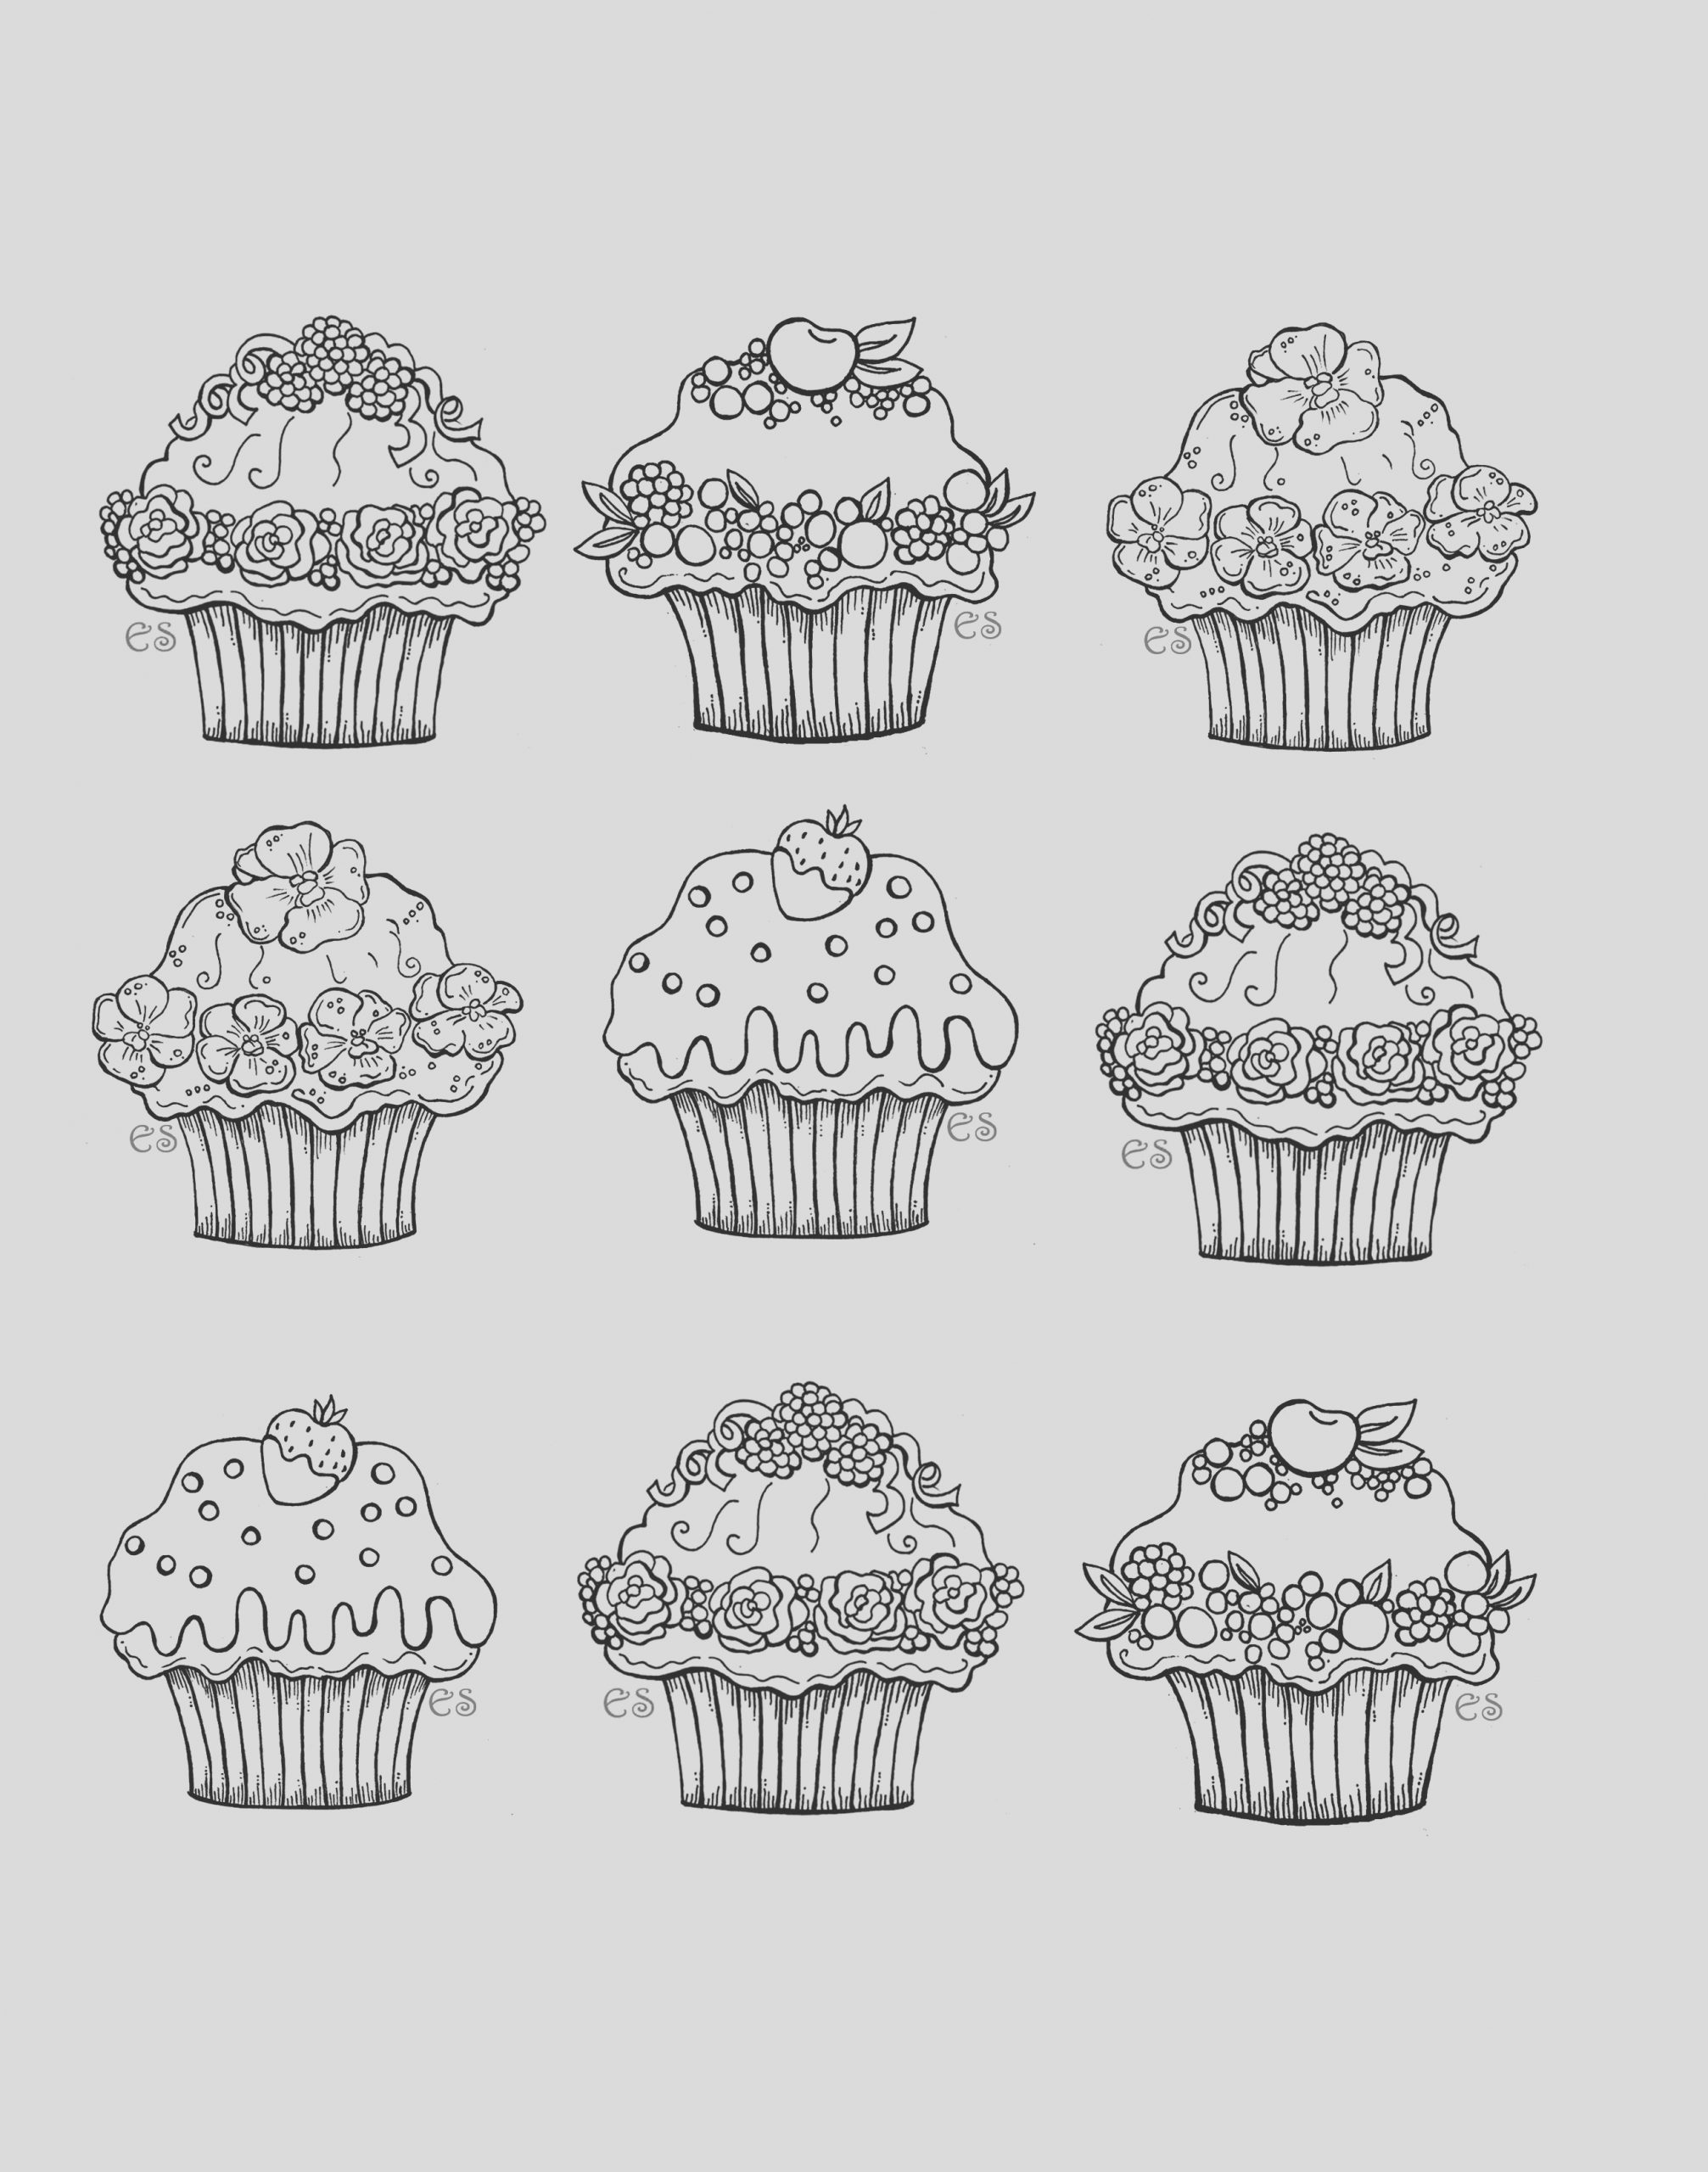 image=cup cakes coloring cute cupcakes 1